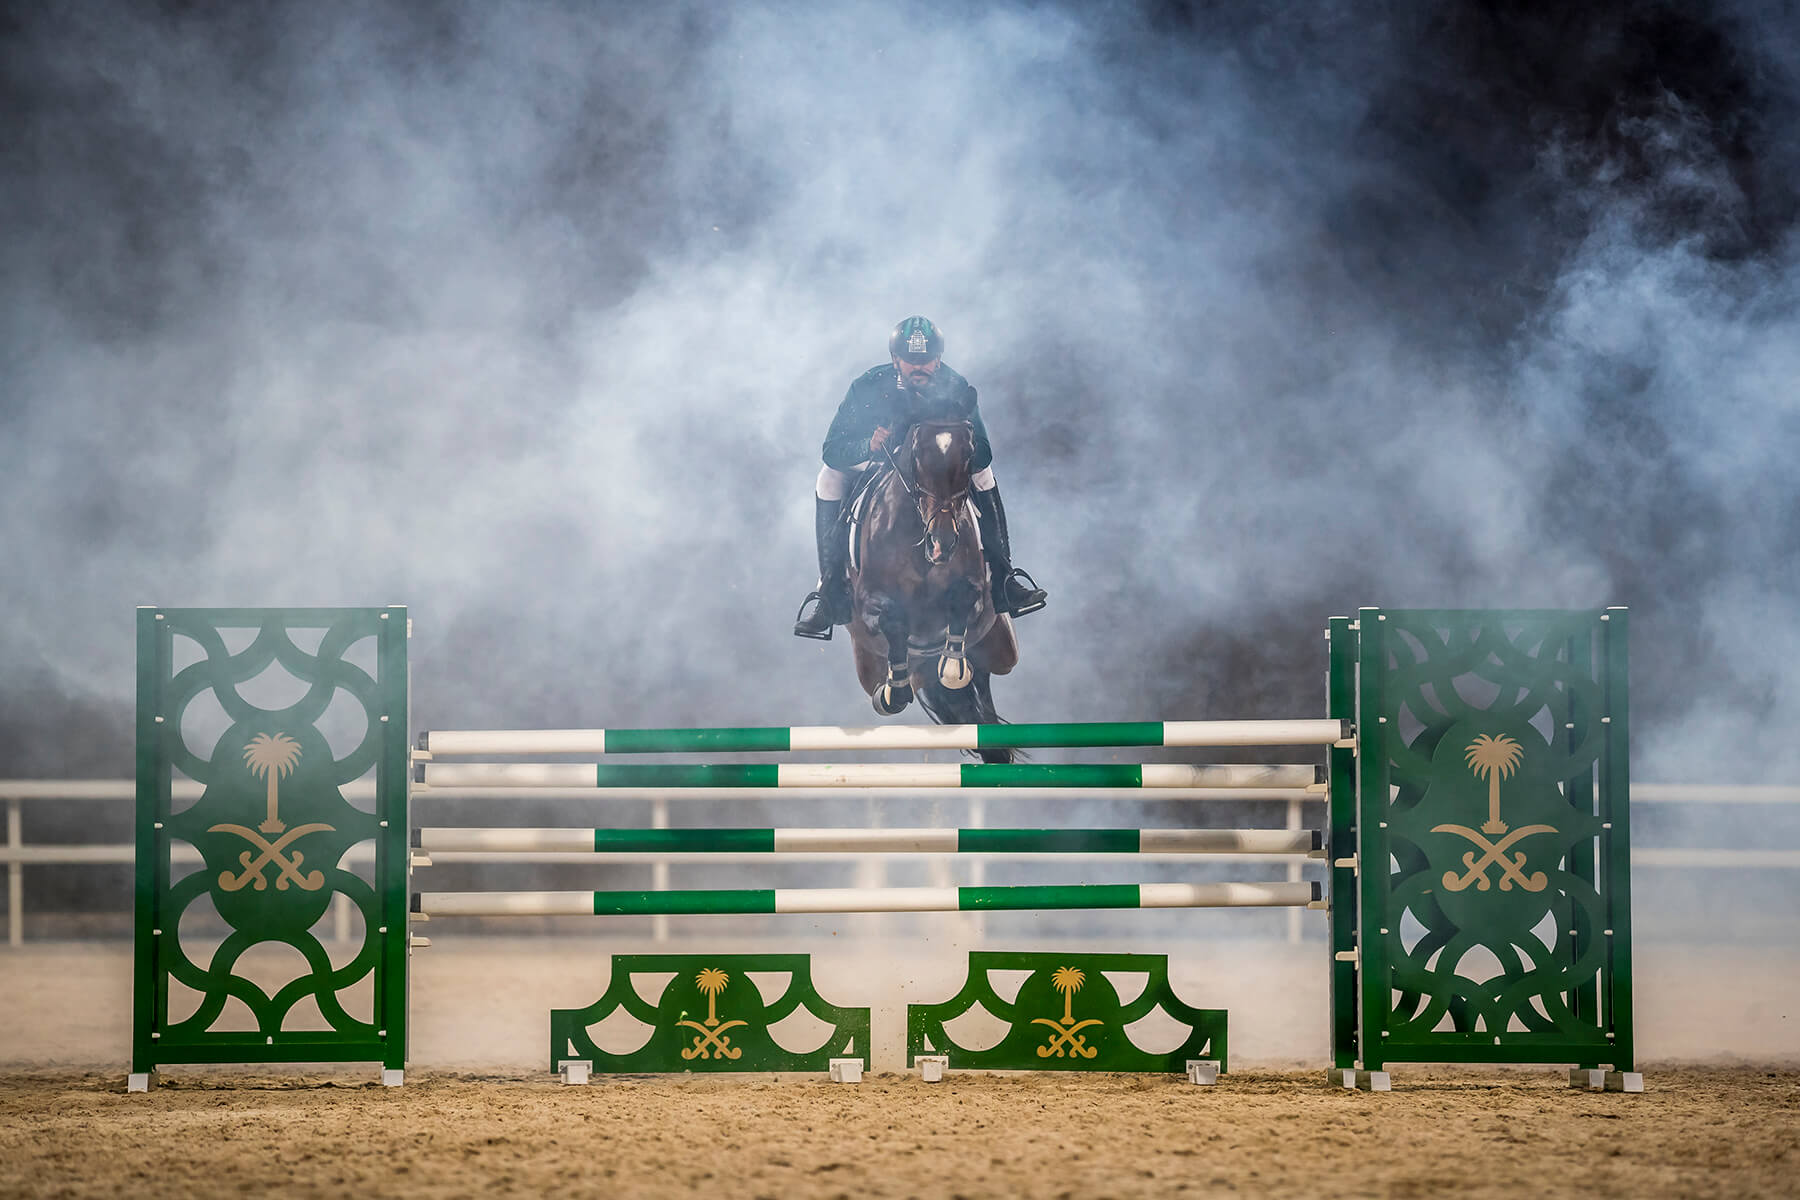 CHAMPION RIDERS TO GALLOP TOWARDS GLORY IN SAUDI ARABIA AS DIRIYAH EQUESTRIAN FESTIVAL OFFERS SHOT AT THE TOKYO 2020 OLYMPICS